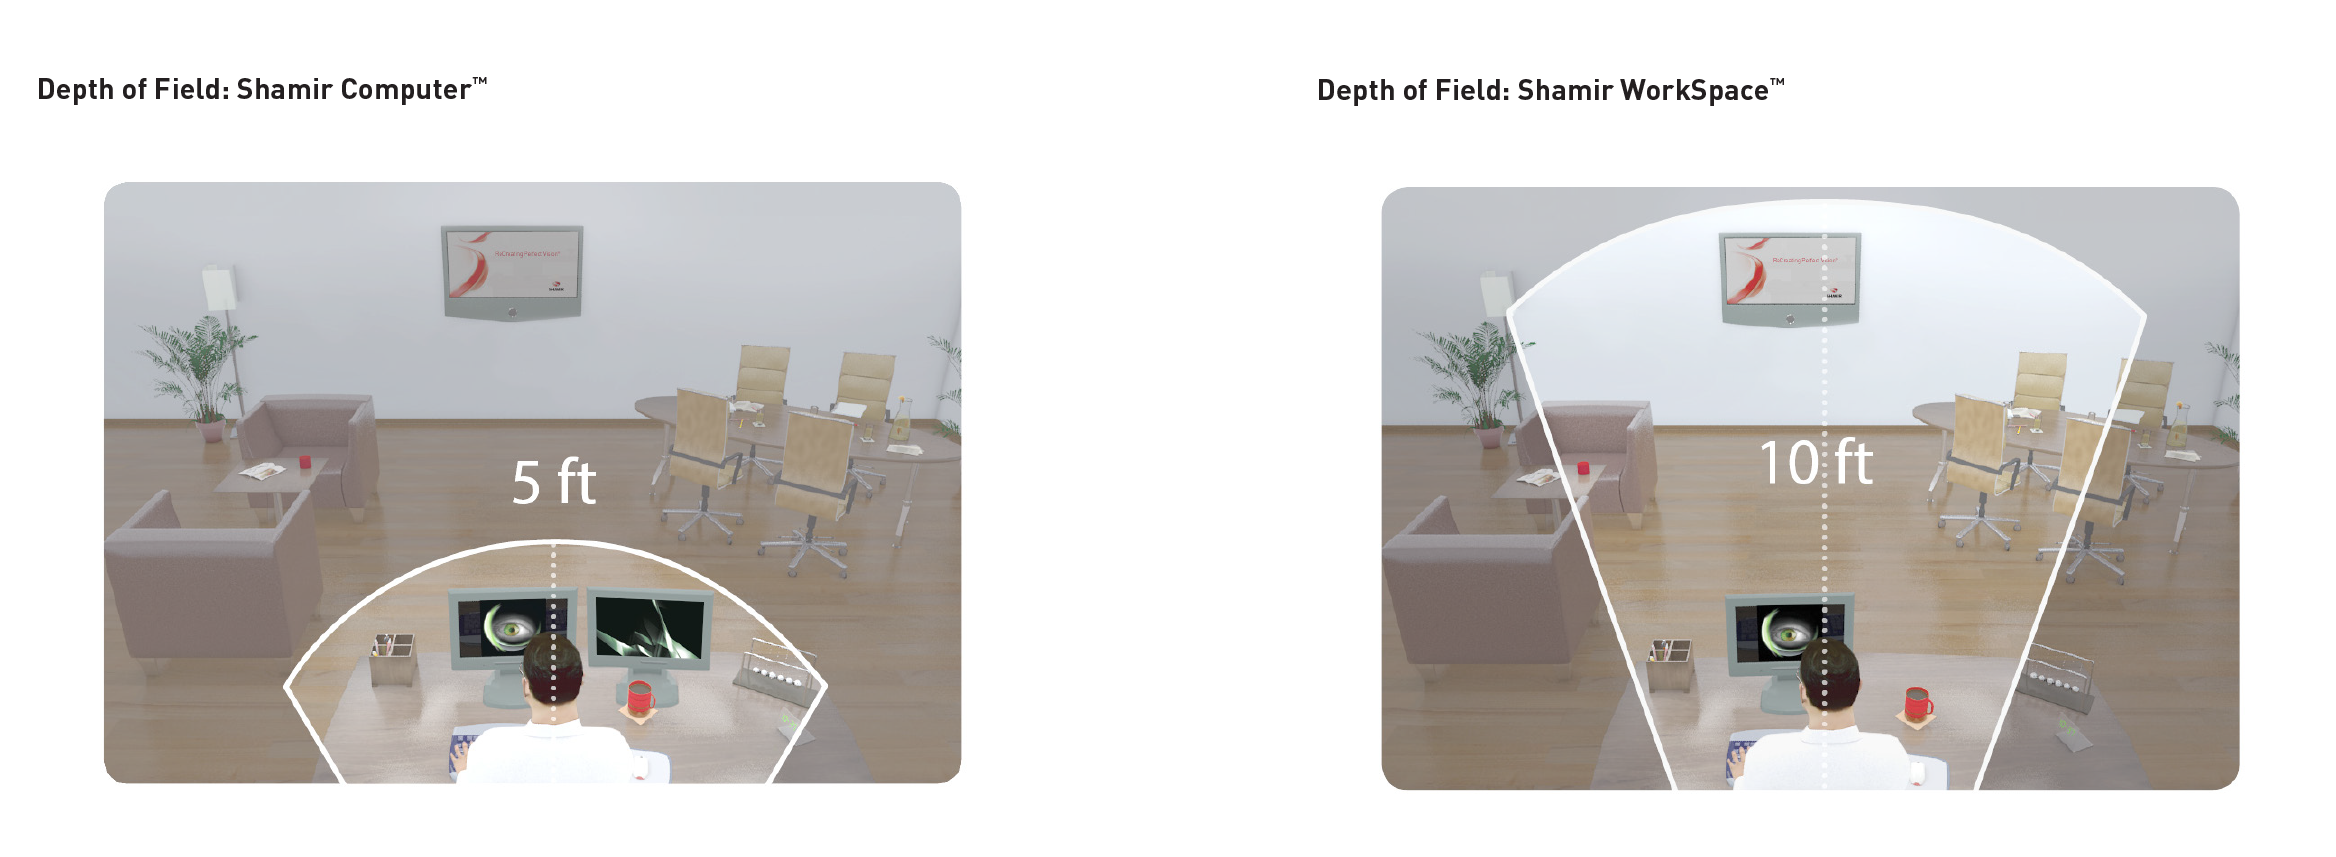 This images shows the difference between a Shamir Office and a Shamir Workplace.